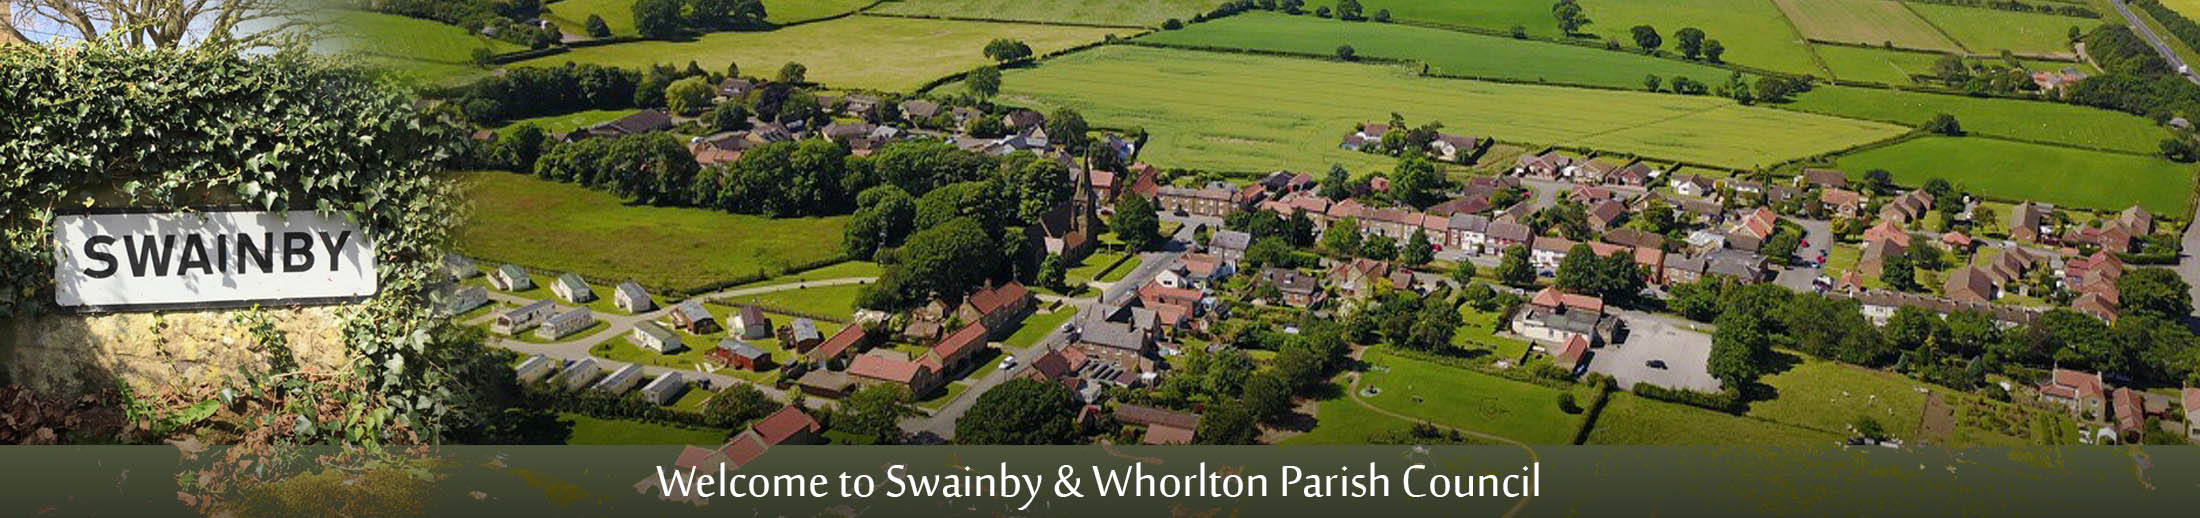 Header Image for Swainby & Whorlton Parish Council